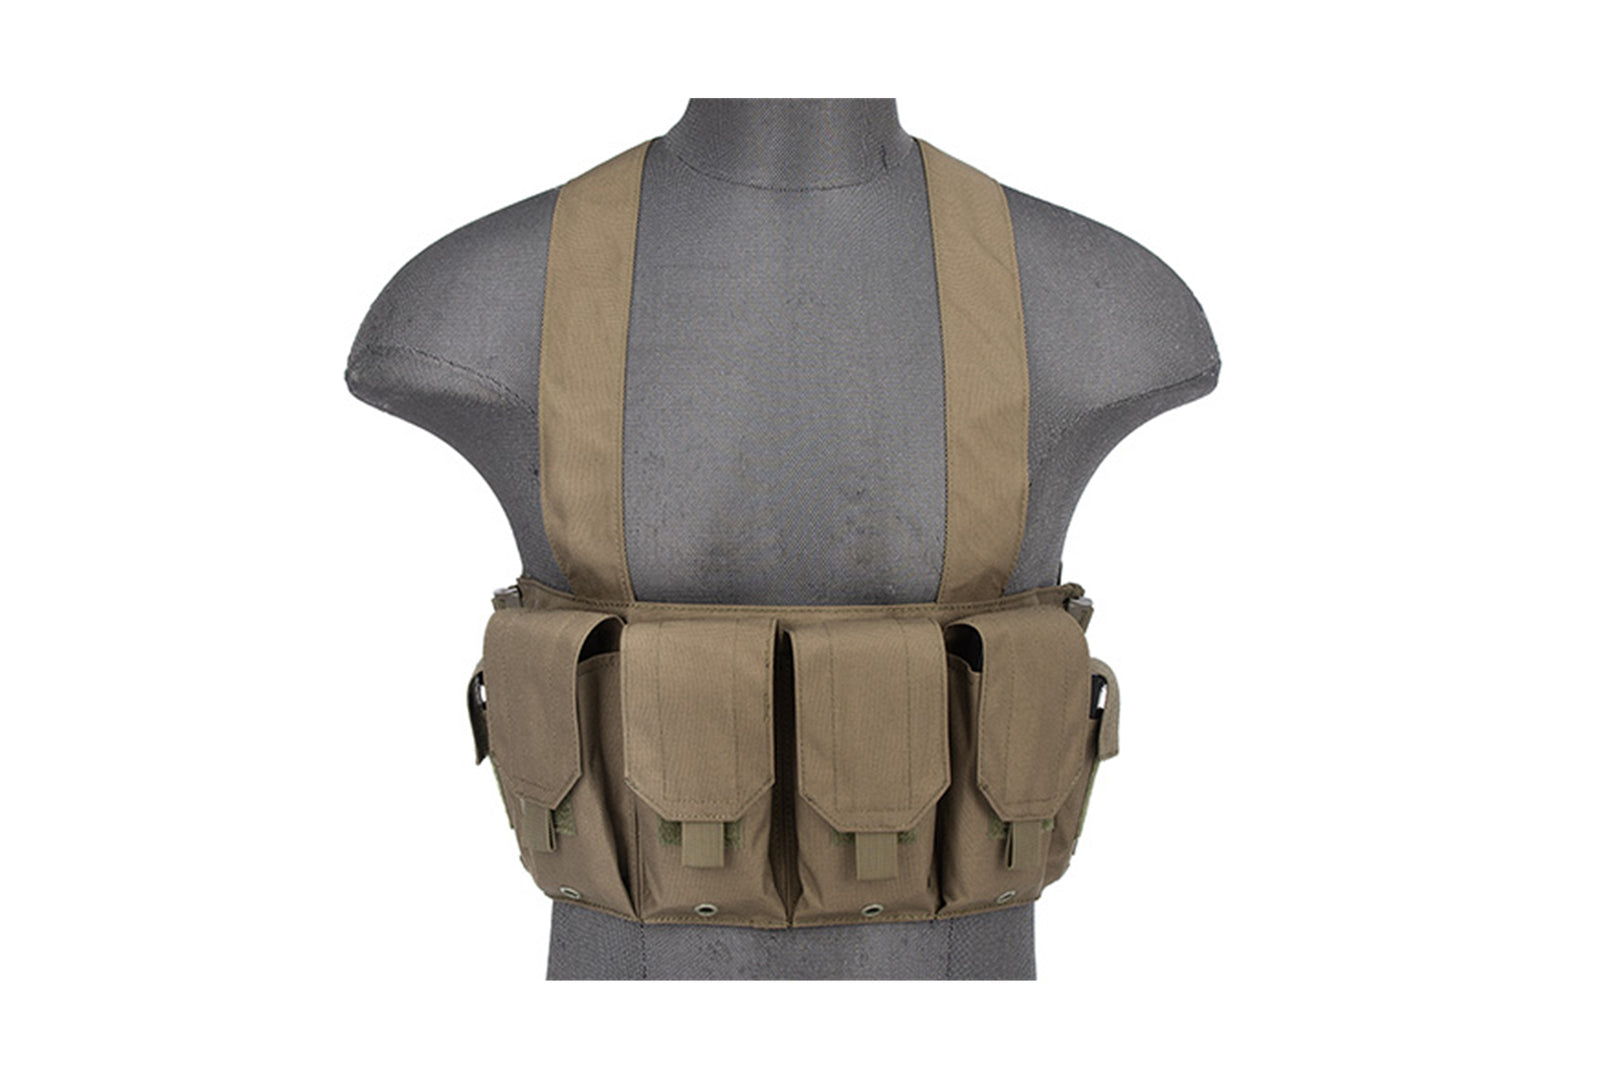 Rugged Tactical Chest Rig w/ 6X Magazine Pouches 1000D